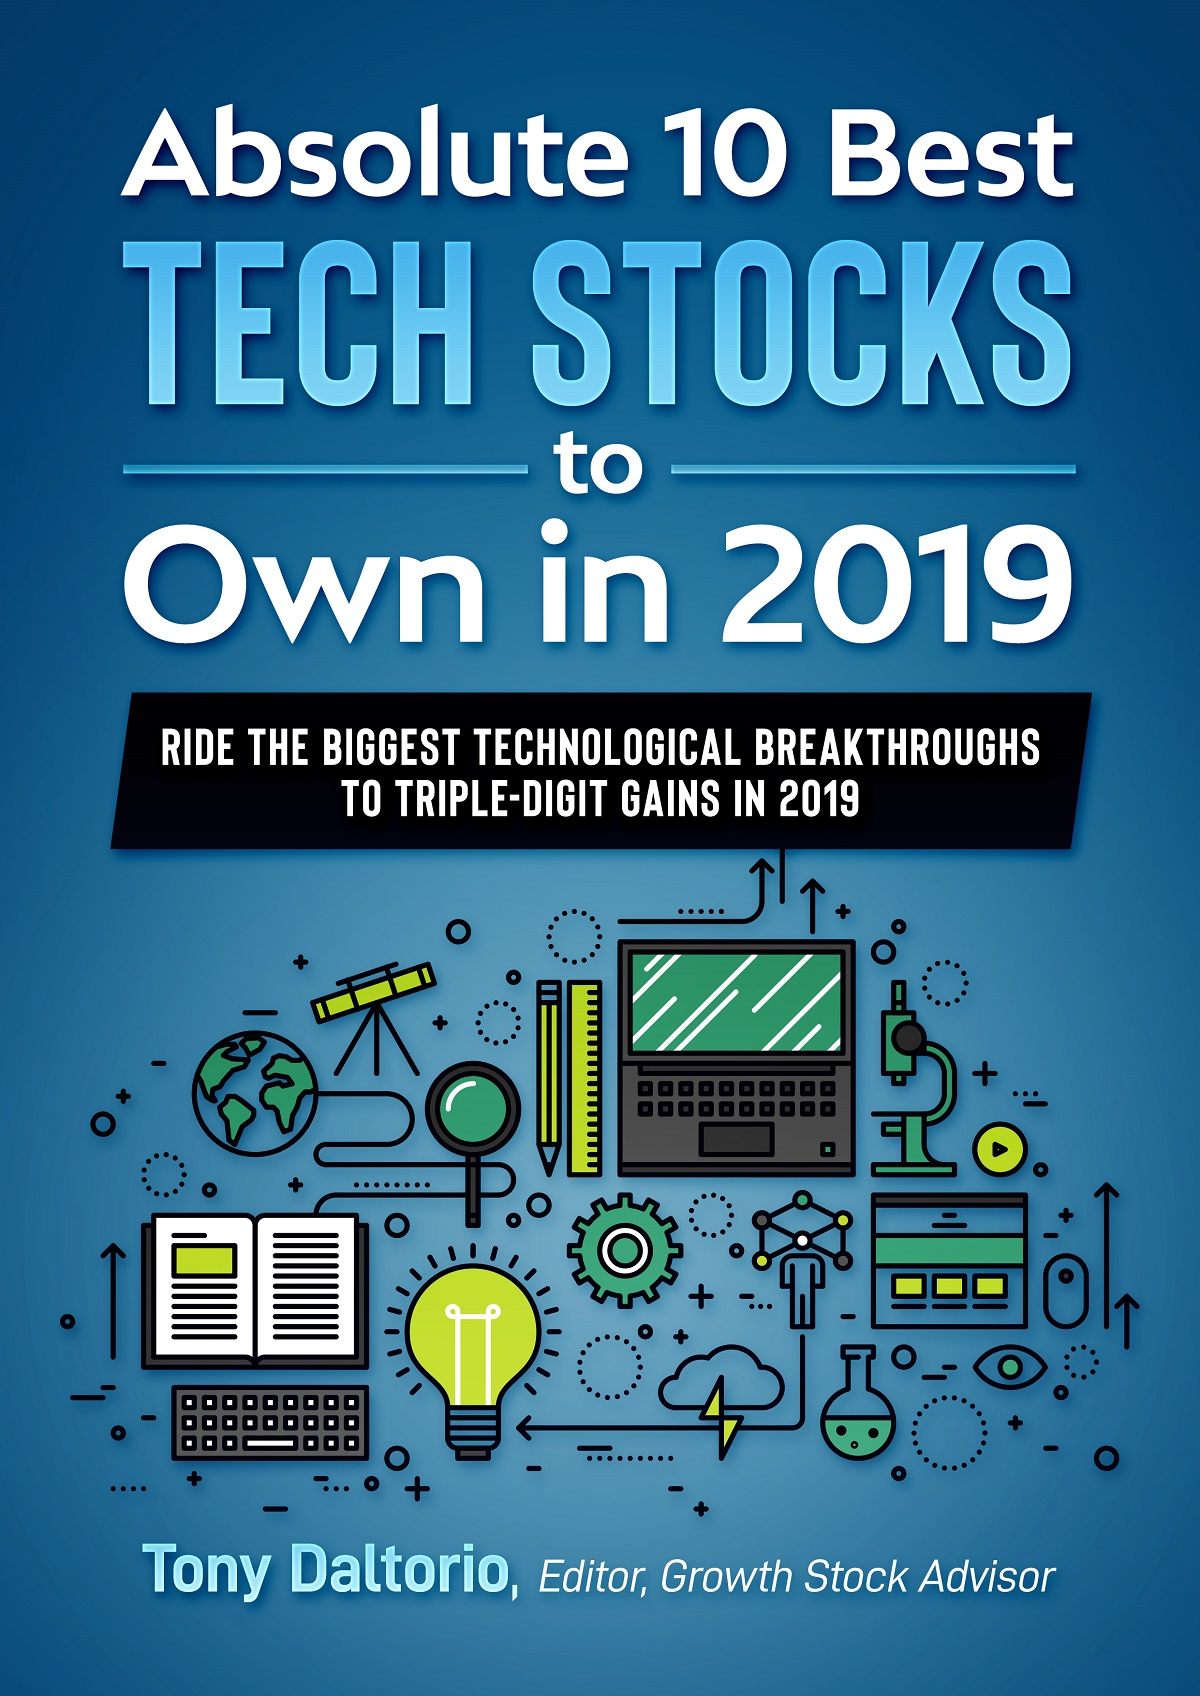 [NEW REPORT] Absolute 10 Best Tech Stocks to Own in 2019